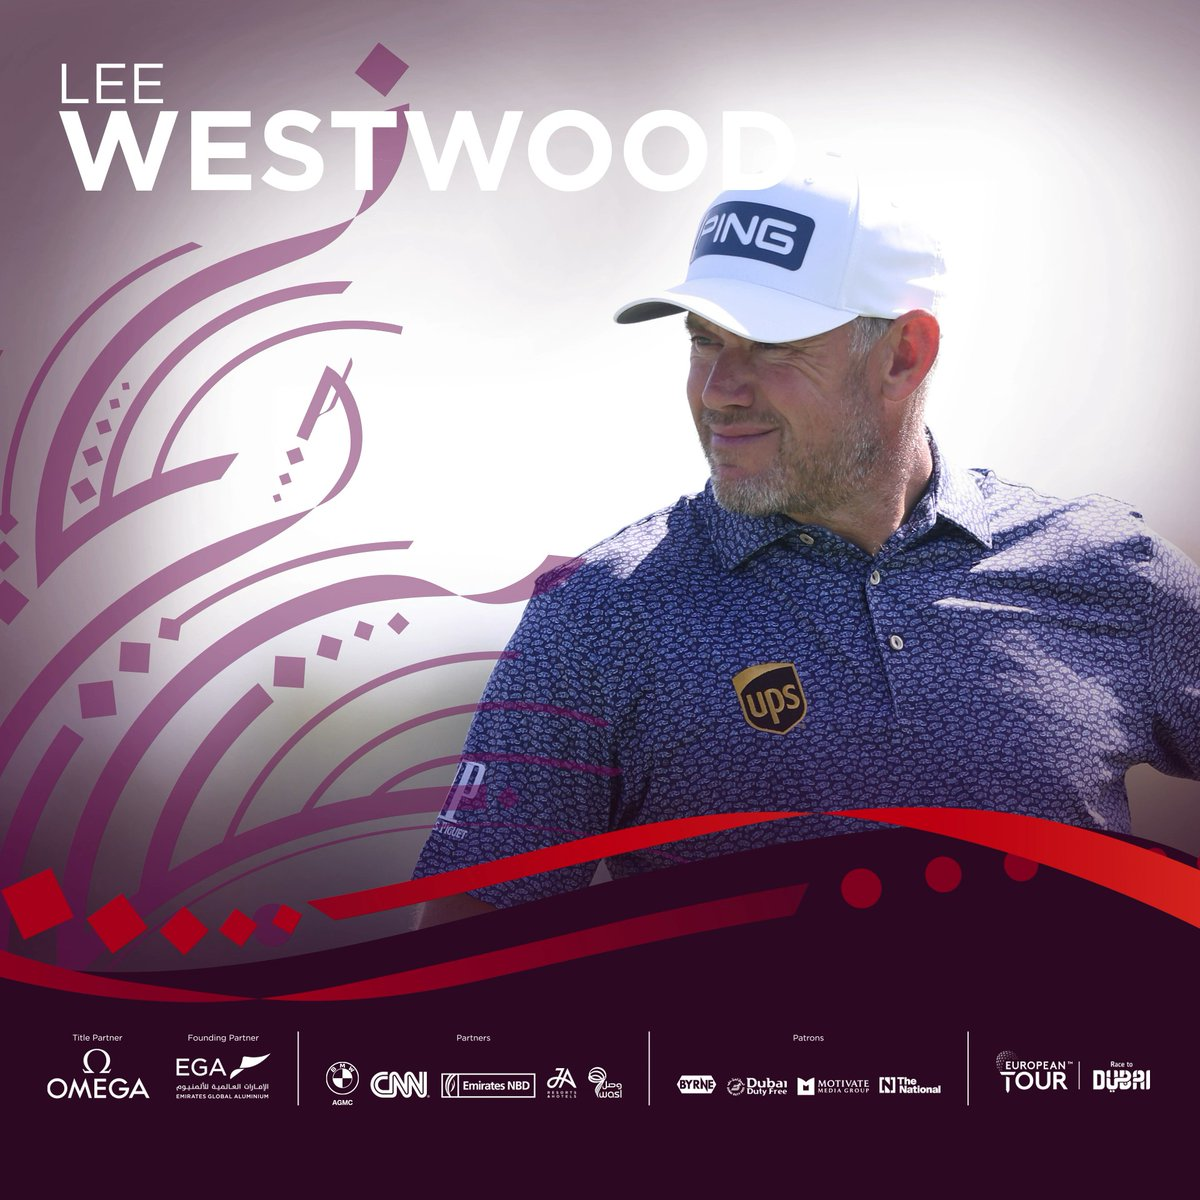 2020 Race to Dubai winner ✅ Last year's #ODDC runner-up ✅ 1📮👨🏼 ✅  Delighted to announce @WestwoodLee, @BezChristiaan and @IanJamesPoulter will be joining us later this month for the 2021 #ODDC 🙌  #MadeForGreatness #TimeToMakeHistory